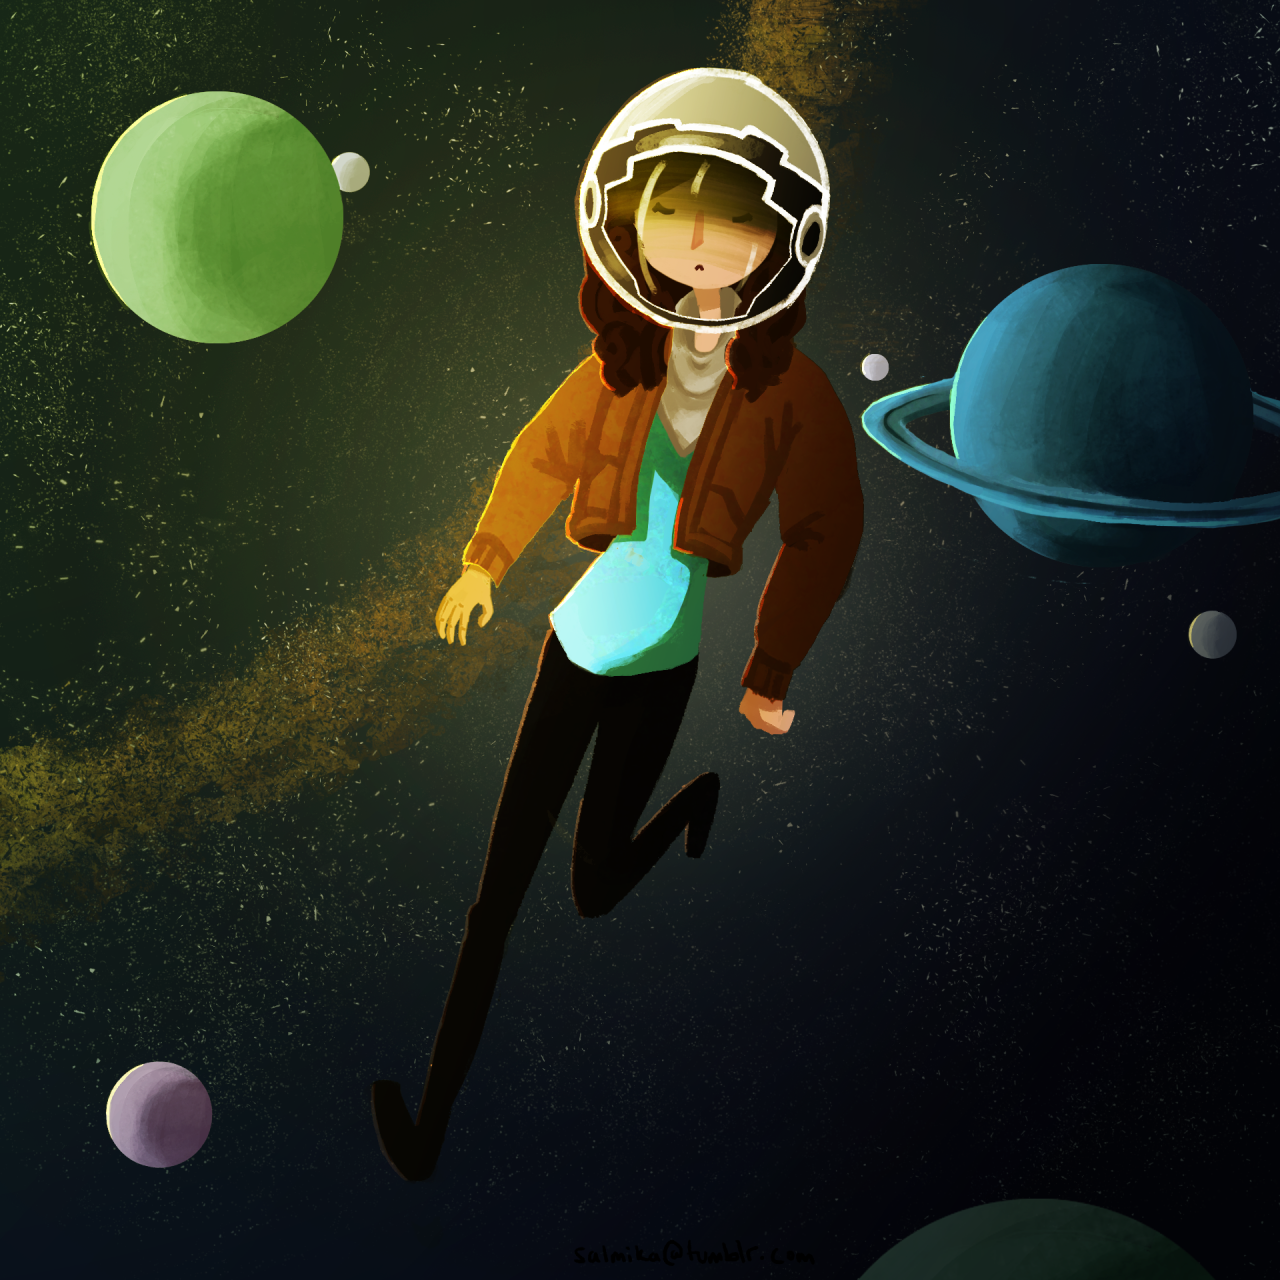 I watched Interstellar again recently and was definitely touched by how beautiful space is  Here is me floatin around space with only a helmet XD